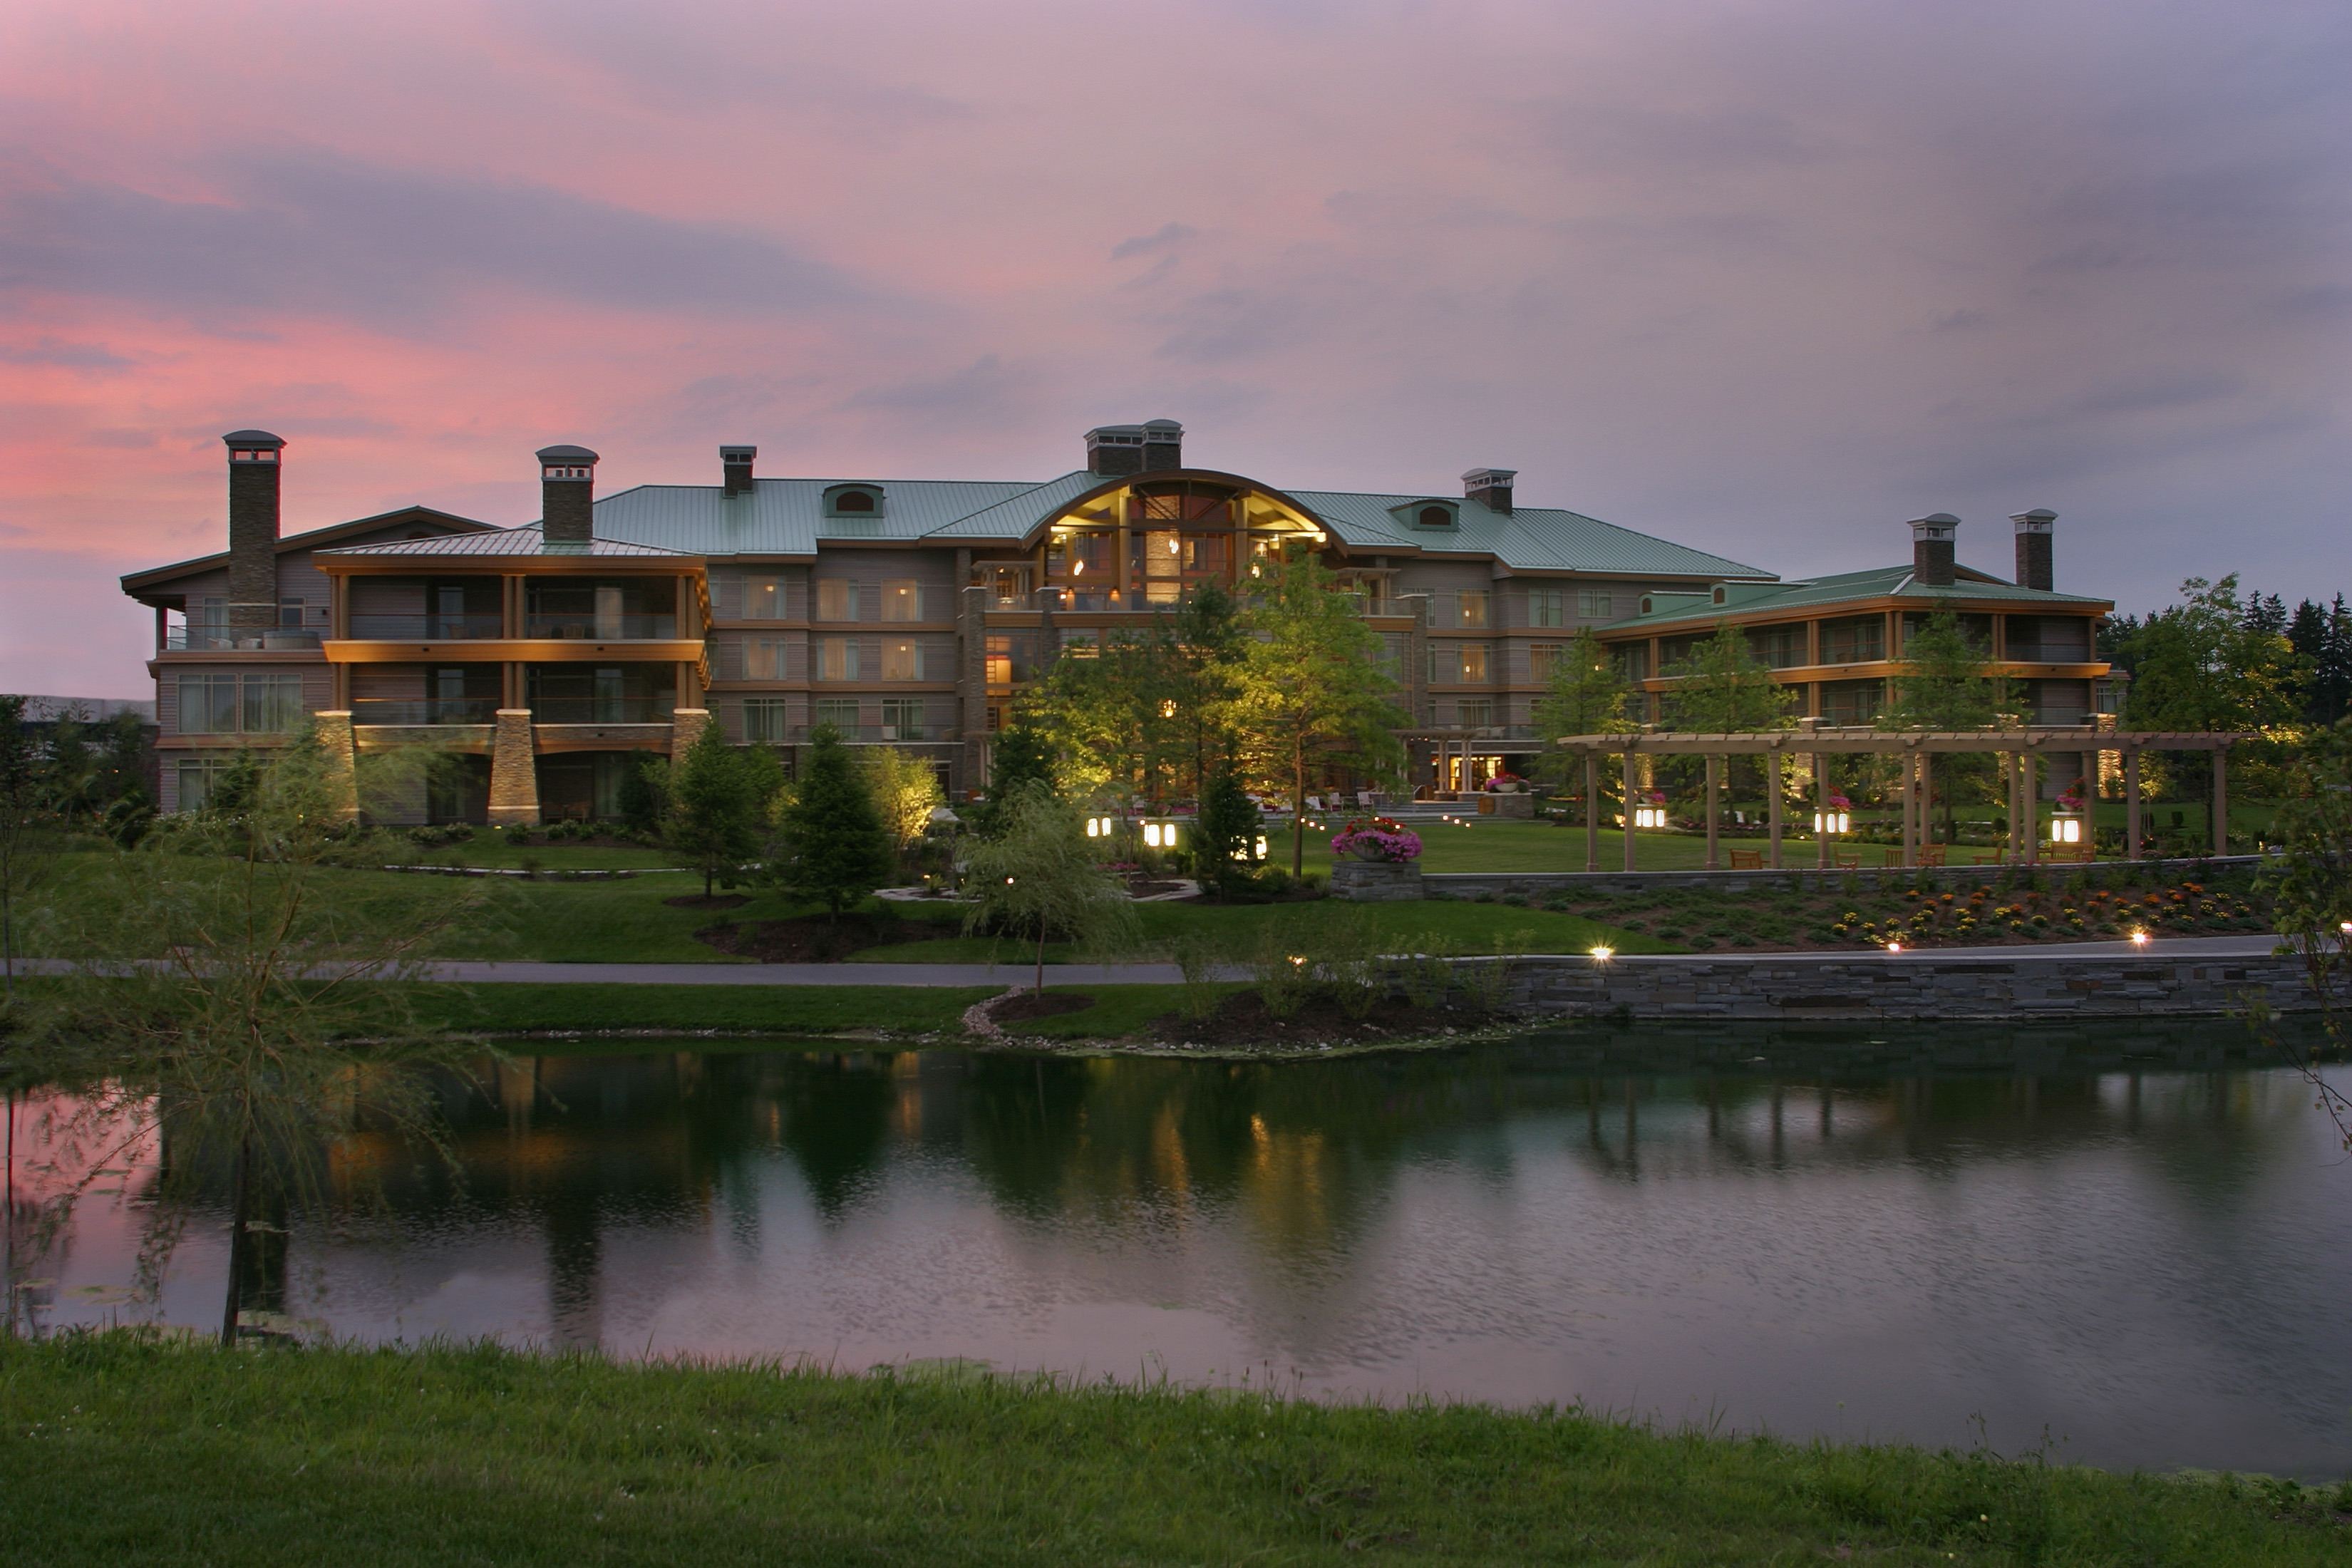 The Lodge at Turning Stone offers quality and consistent service.